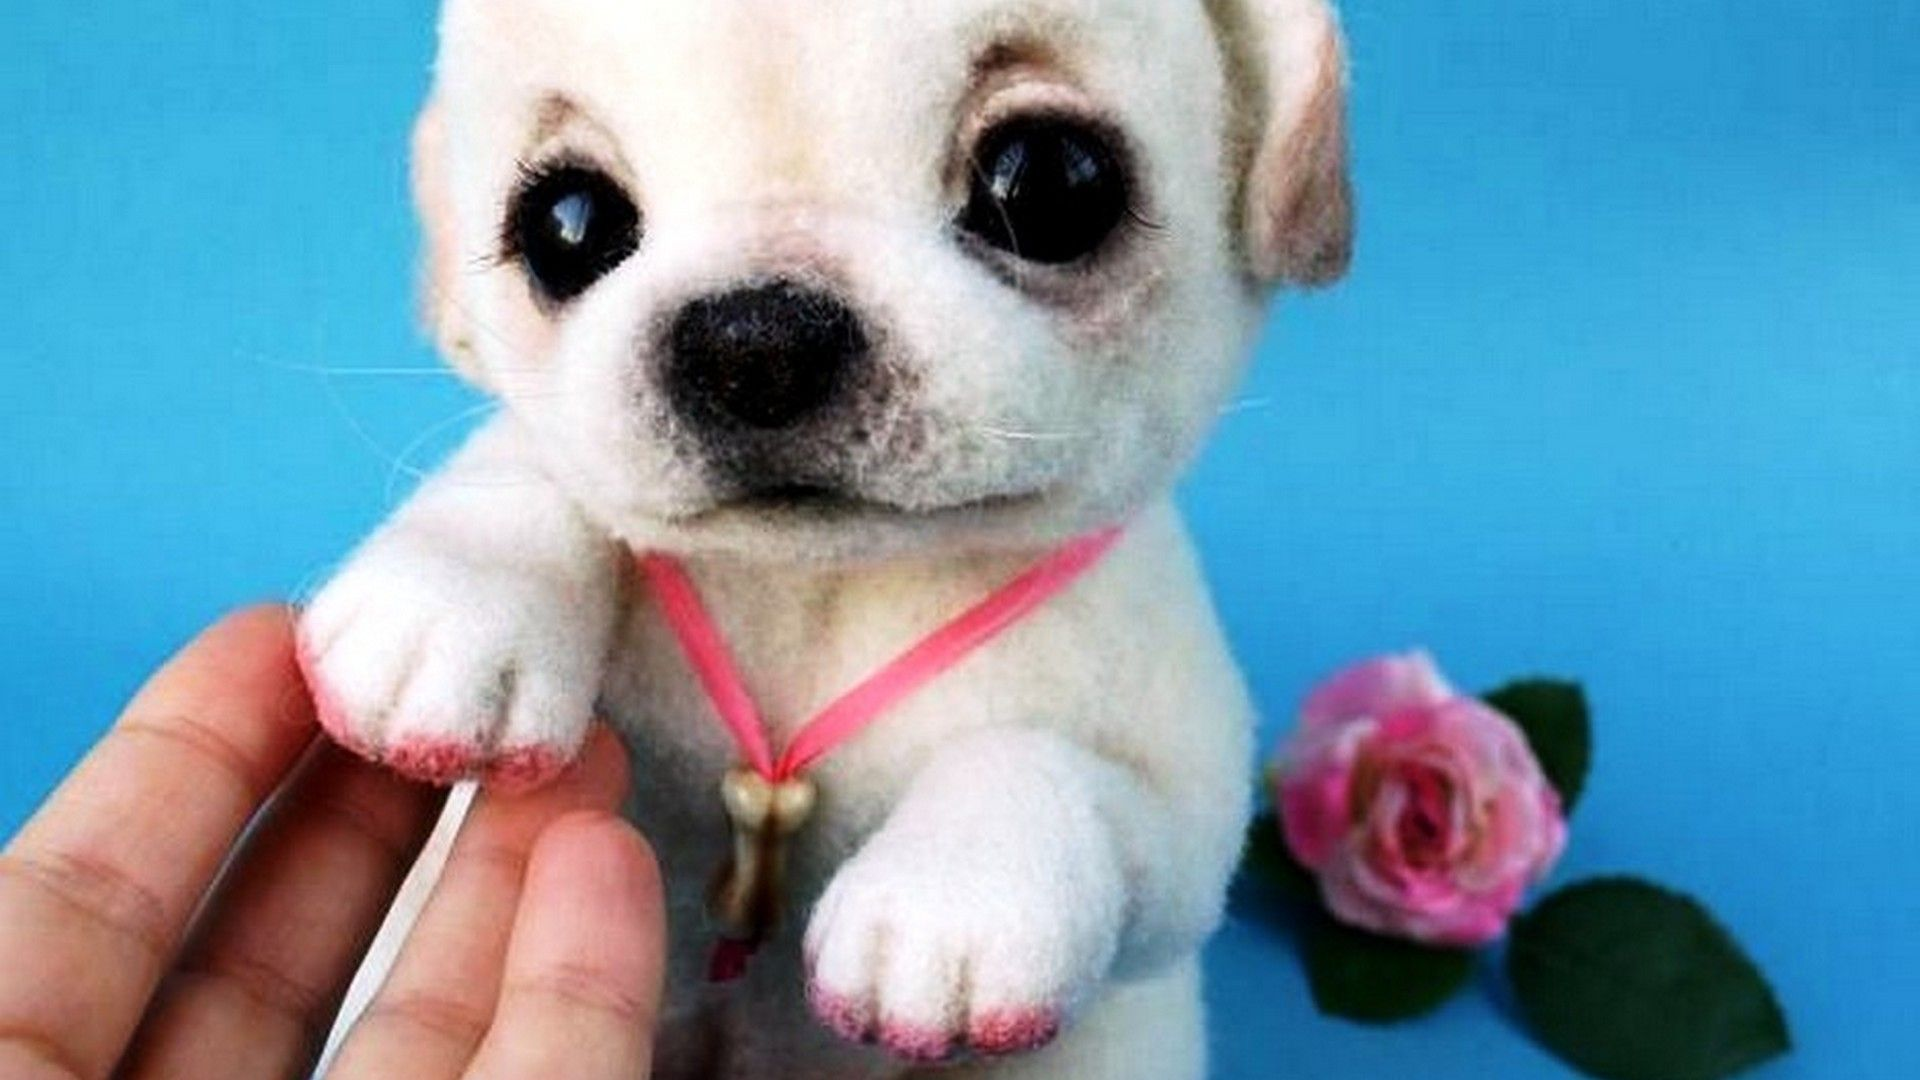 Puppy Pink Nails Wallpaper Hd Best Hd Wallpapers Puppies Cute Dogs Buy Puppies